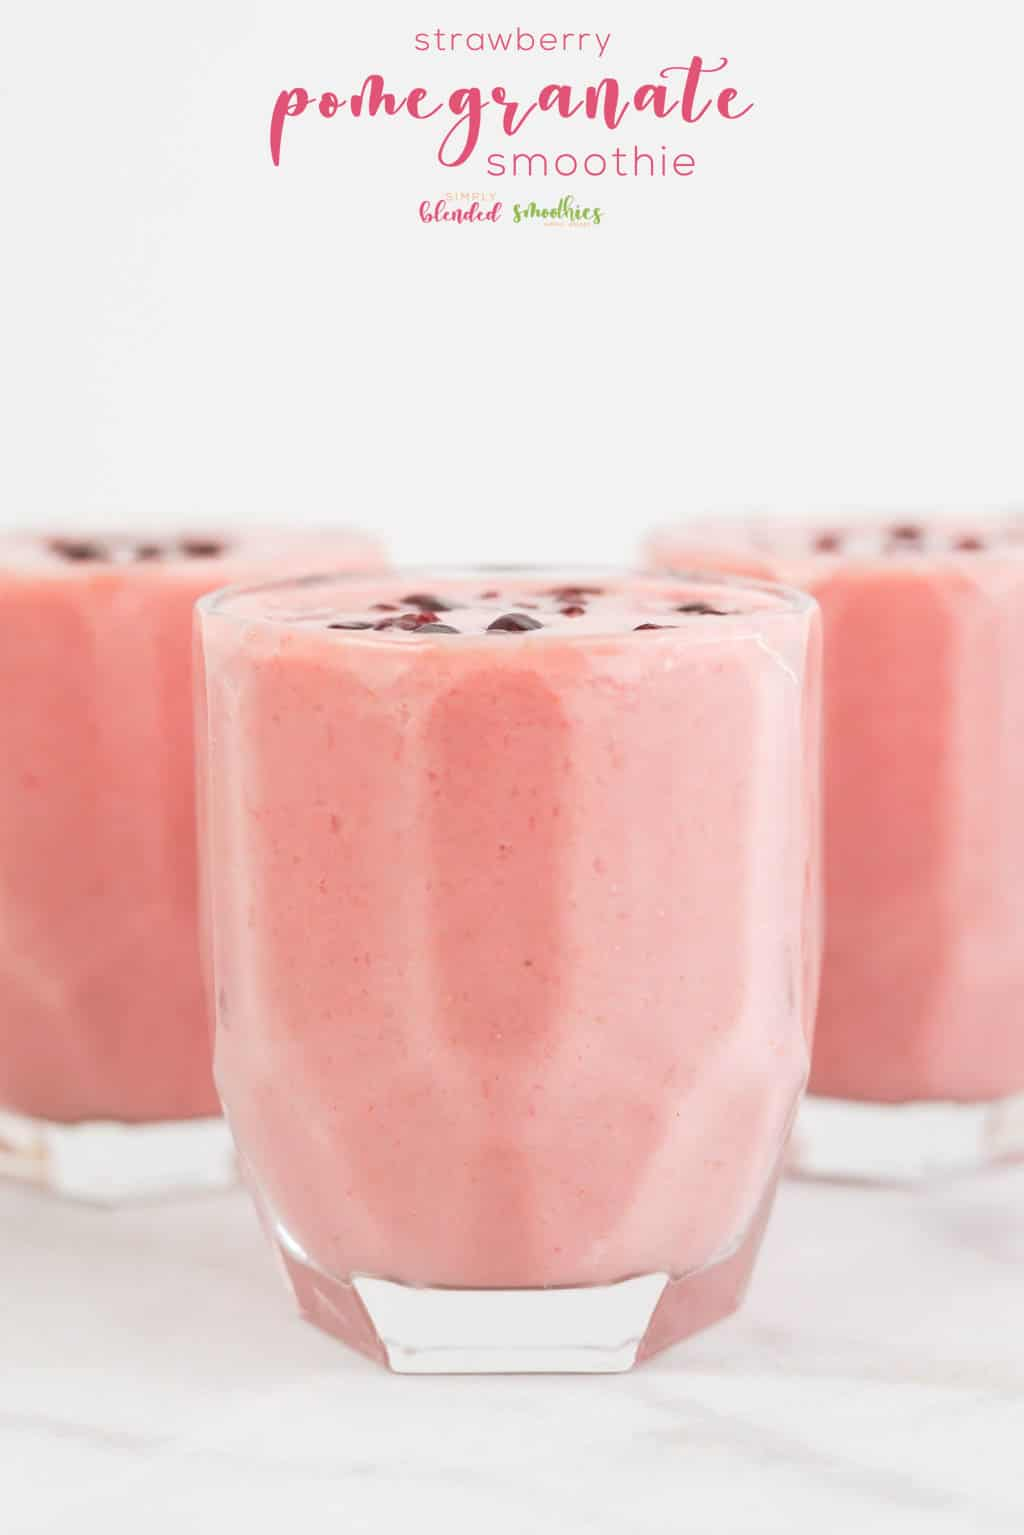 Homemade Strawberry Pomegranate Smoothie Recipe